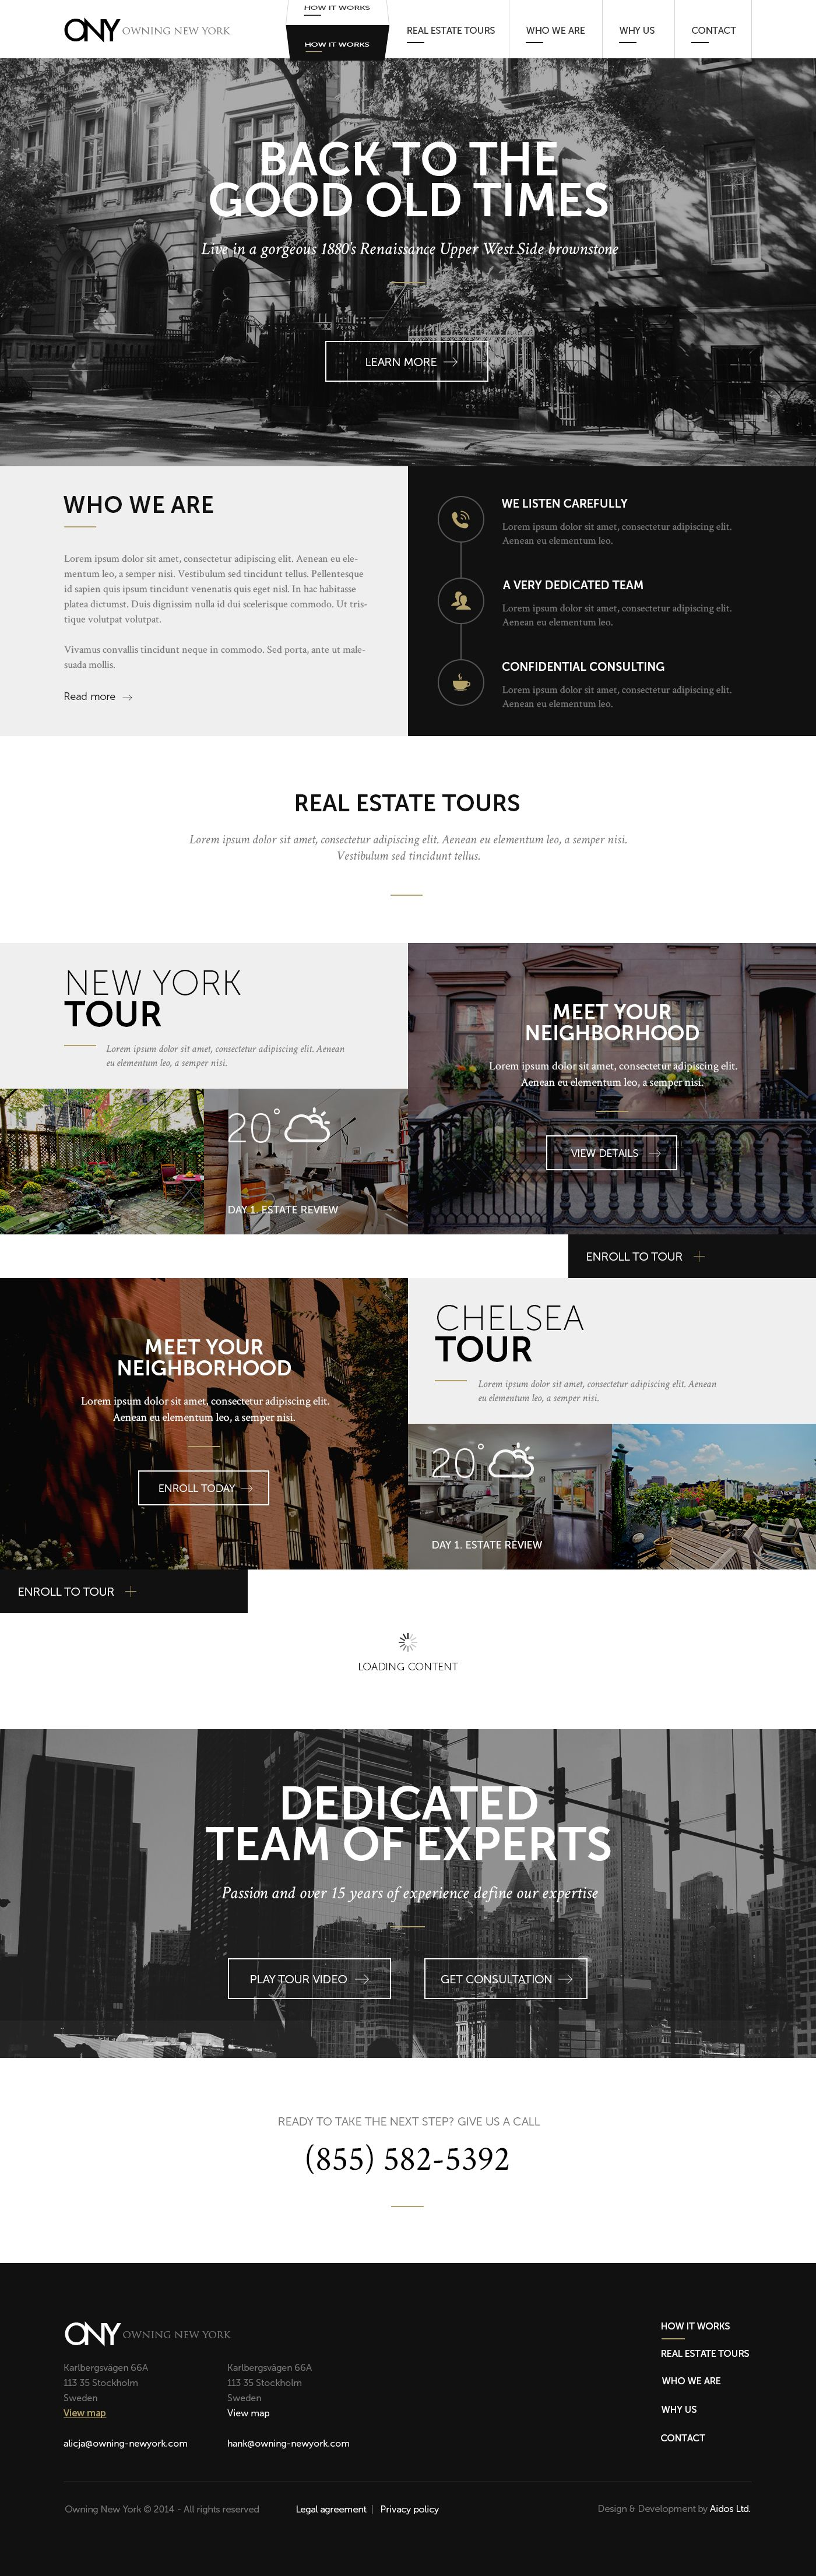 Web Design Project Owning New York Landing Page Web Design Projects Web Layout Design Web Design